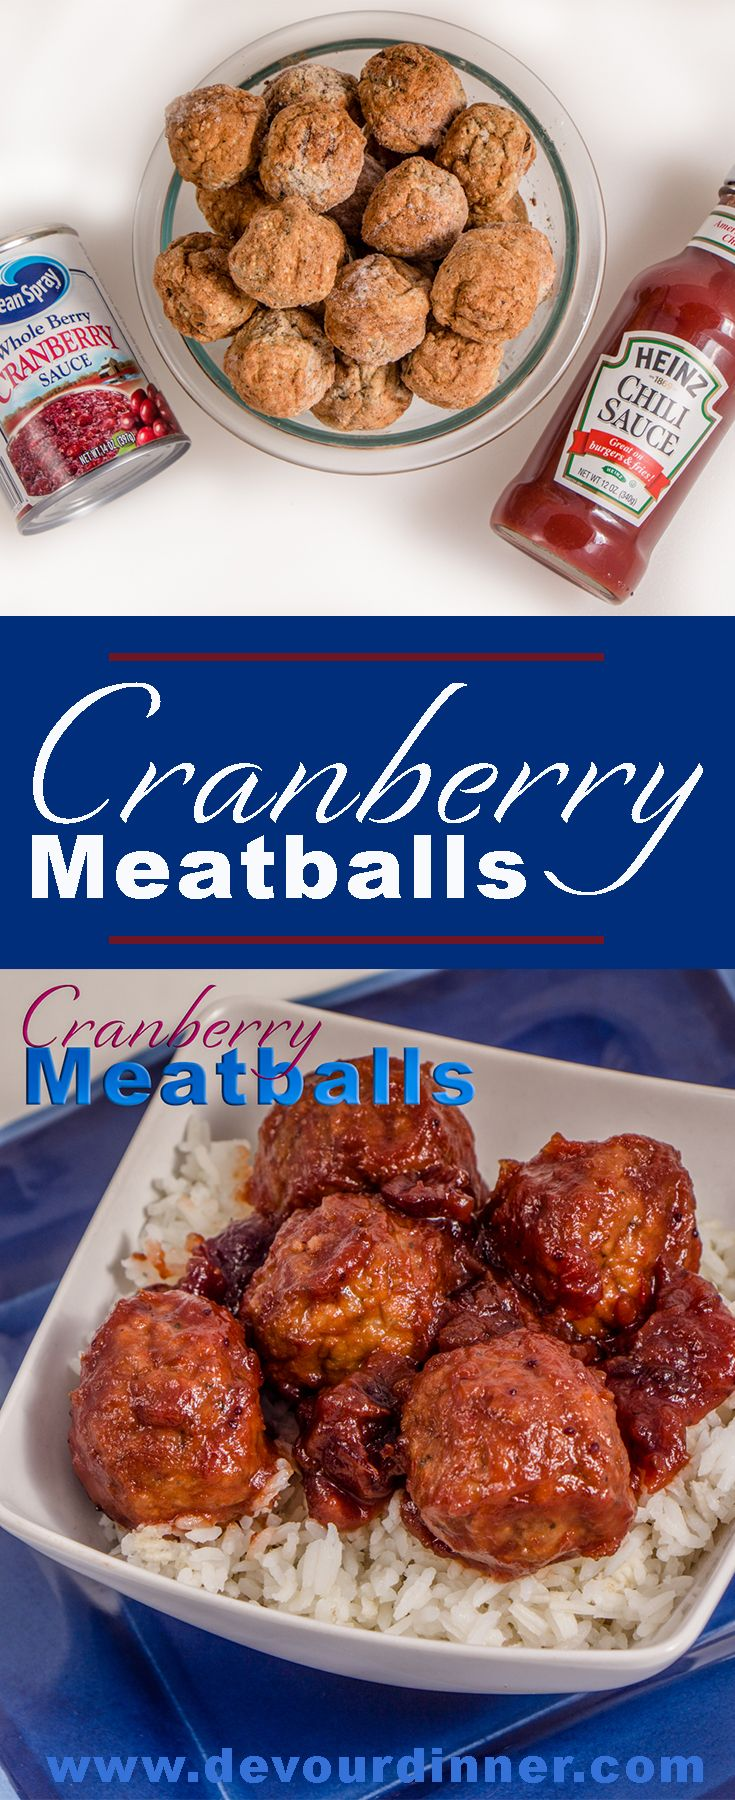 Cranberry Meatballs - Devour Dinner